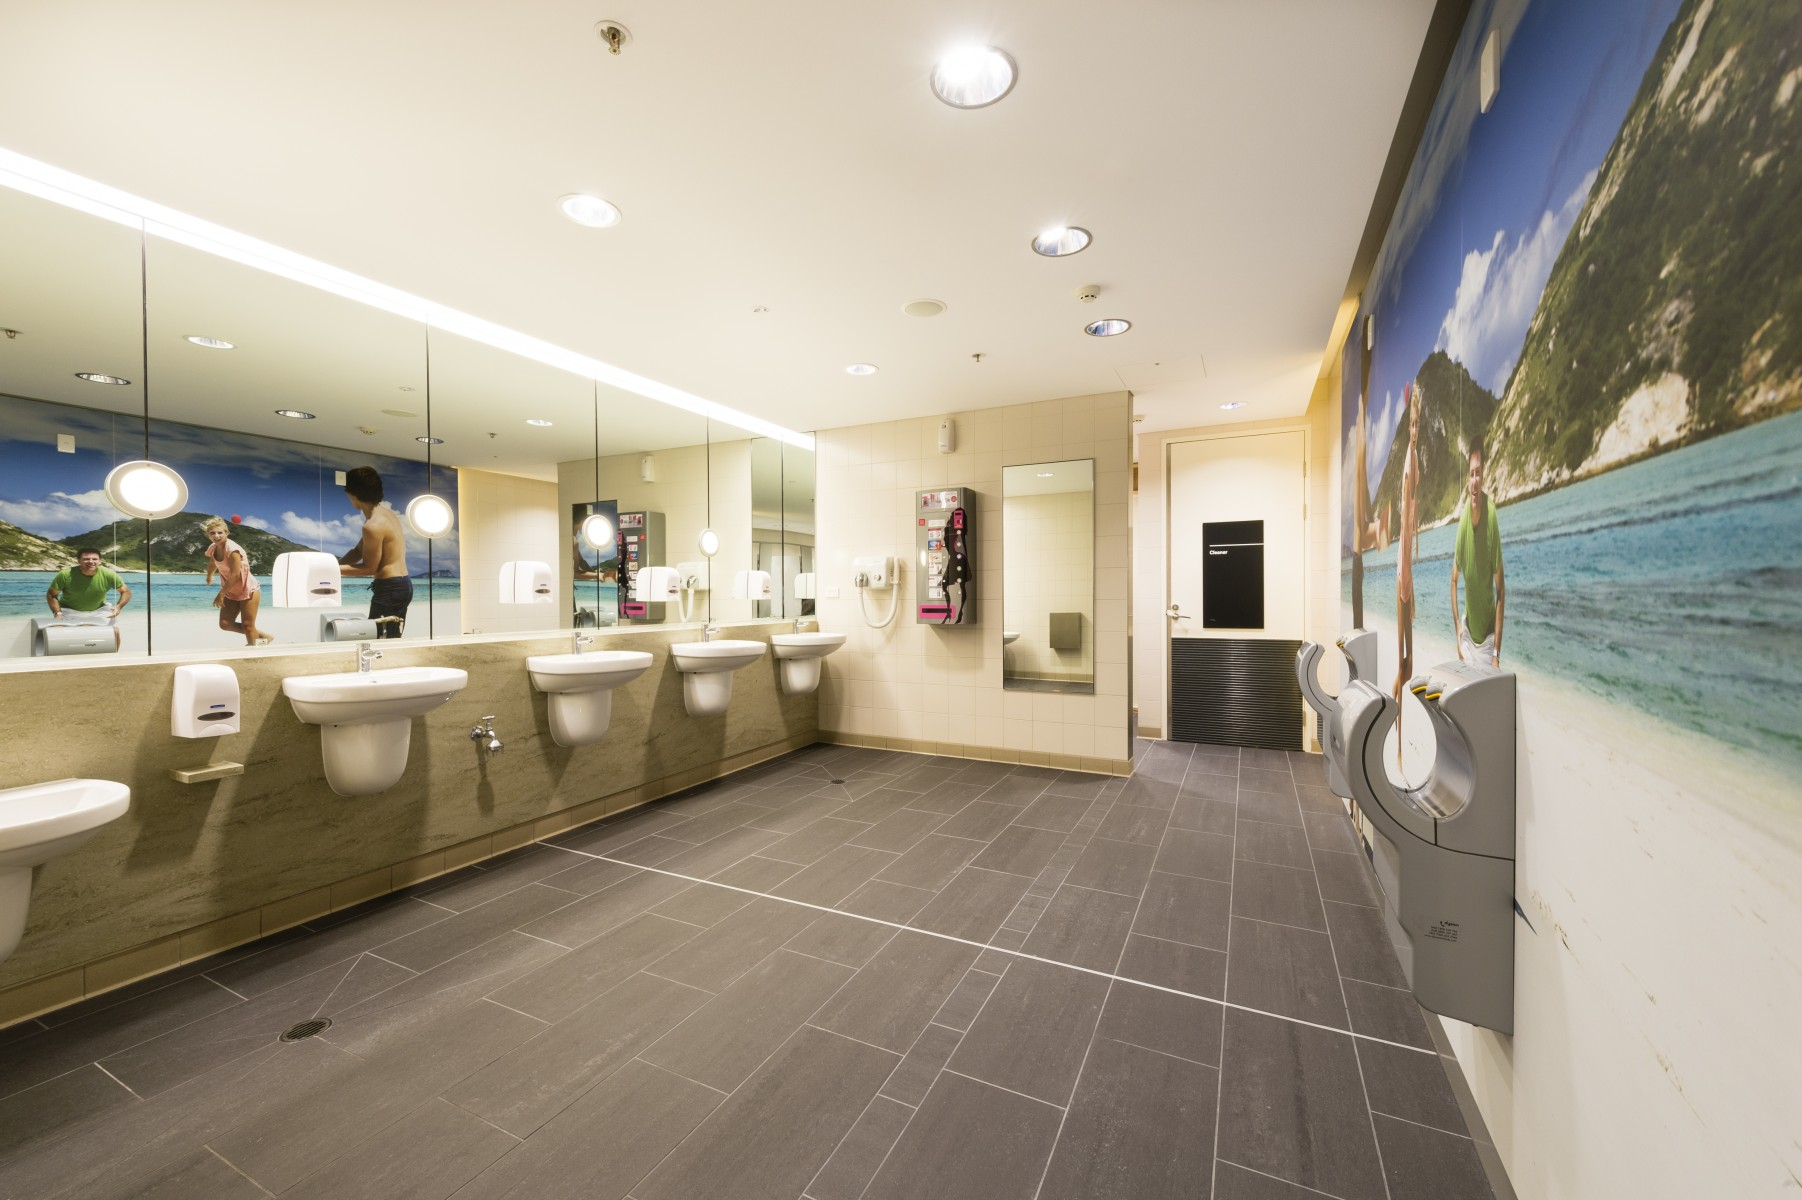 Brisbane international terminal bathrooms named australia for Best bathrooms in australia